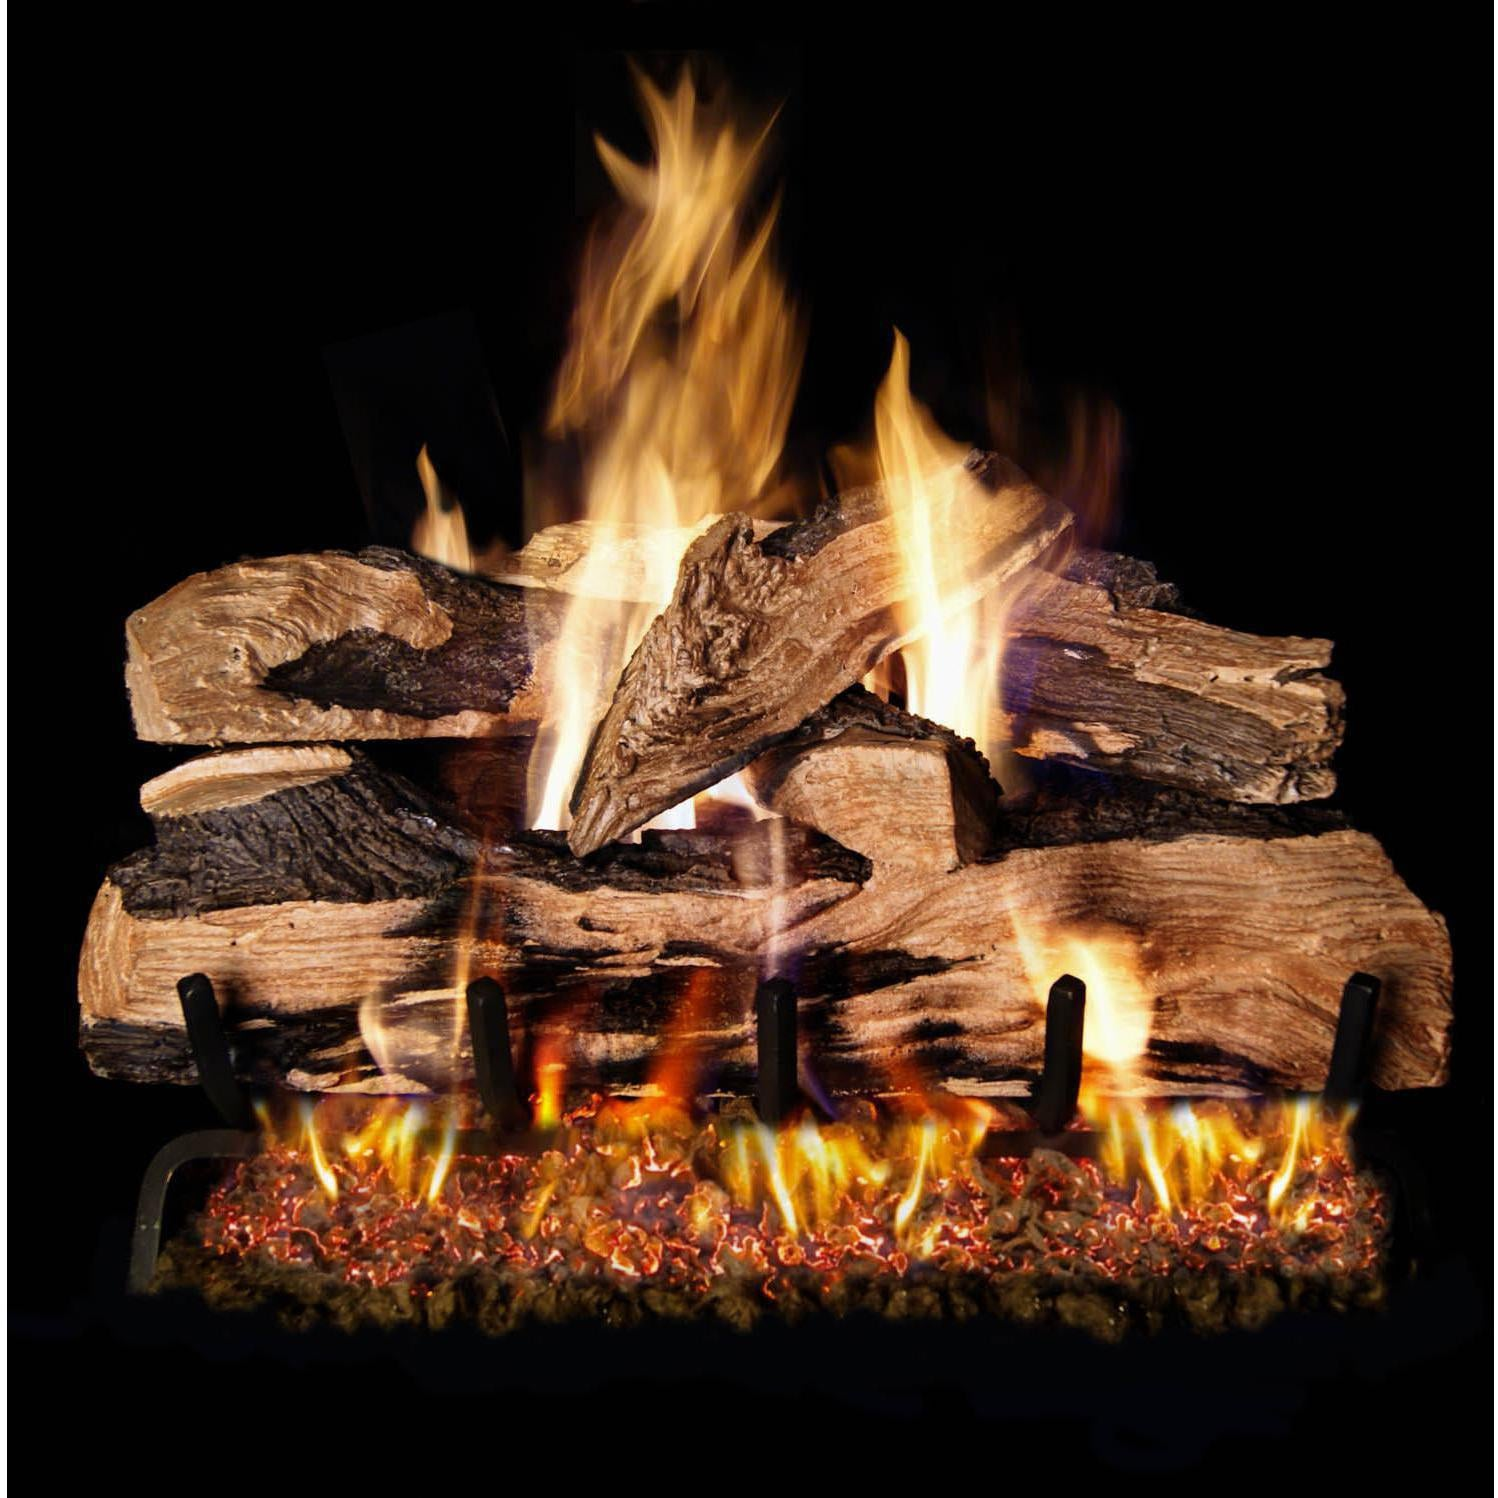 Ceramic Logs For Gas Fireplace Peterson Real Fyre 18 Inch Charred Oak Gas Log Set With Vented Natural Gas G4 Burner Match Light